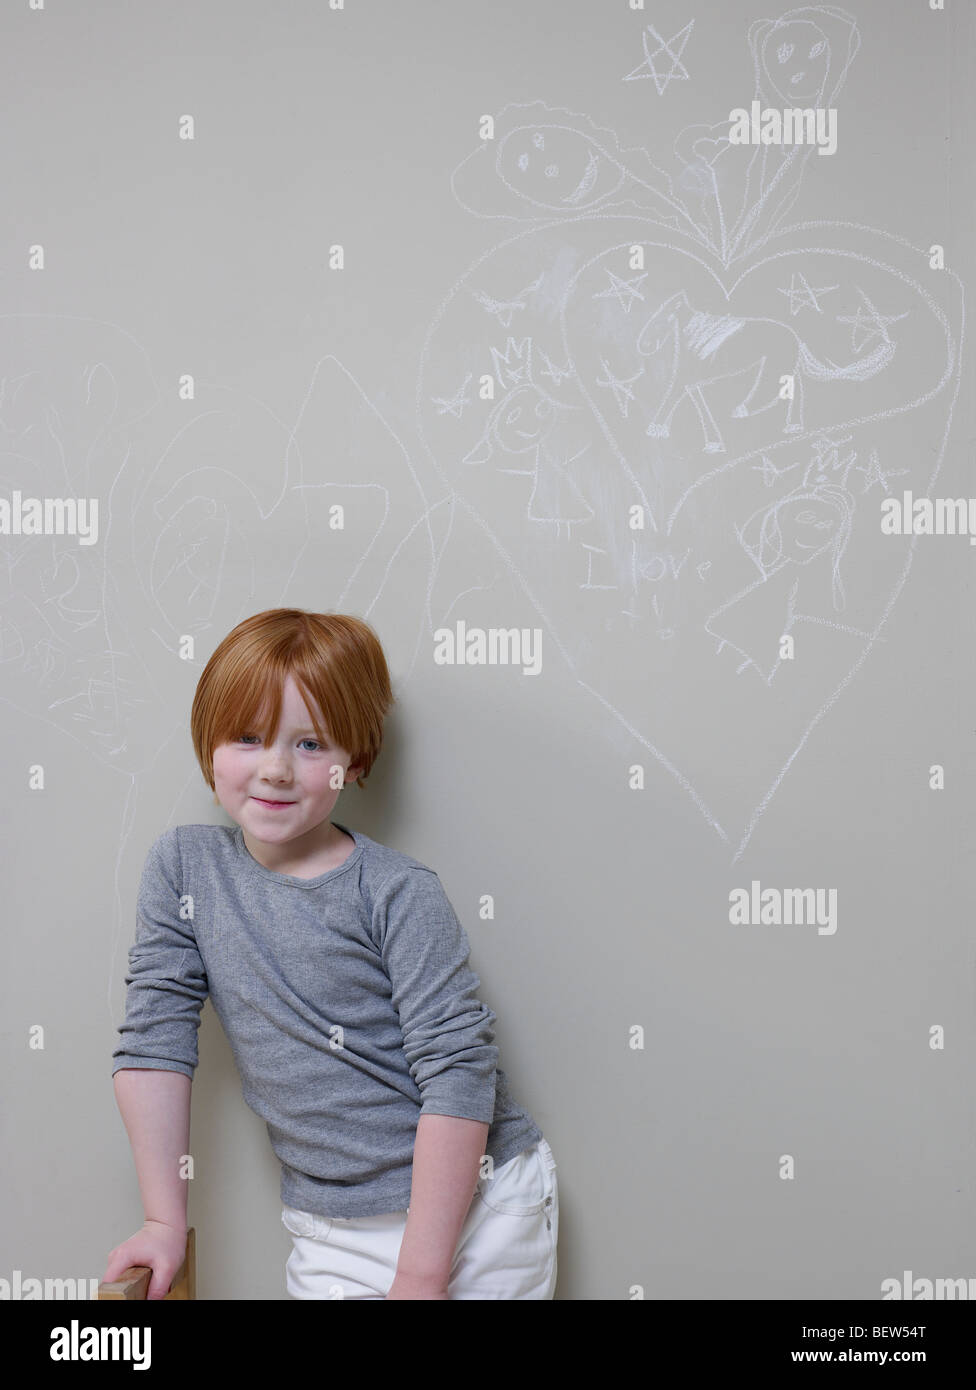 7-8 Year old girl stands below chalk drawing on wall Stock Photo